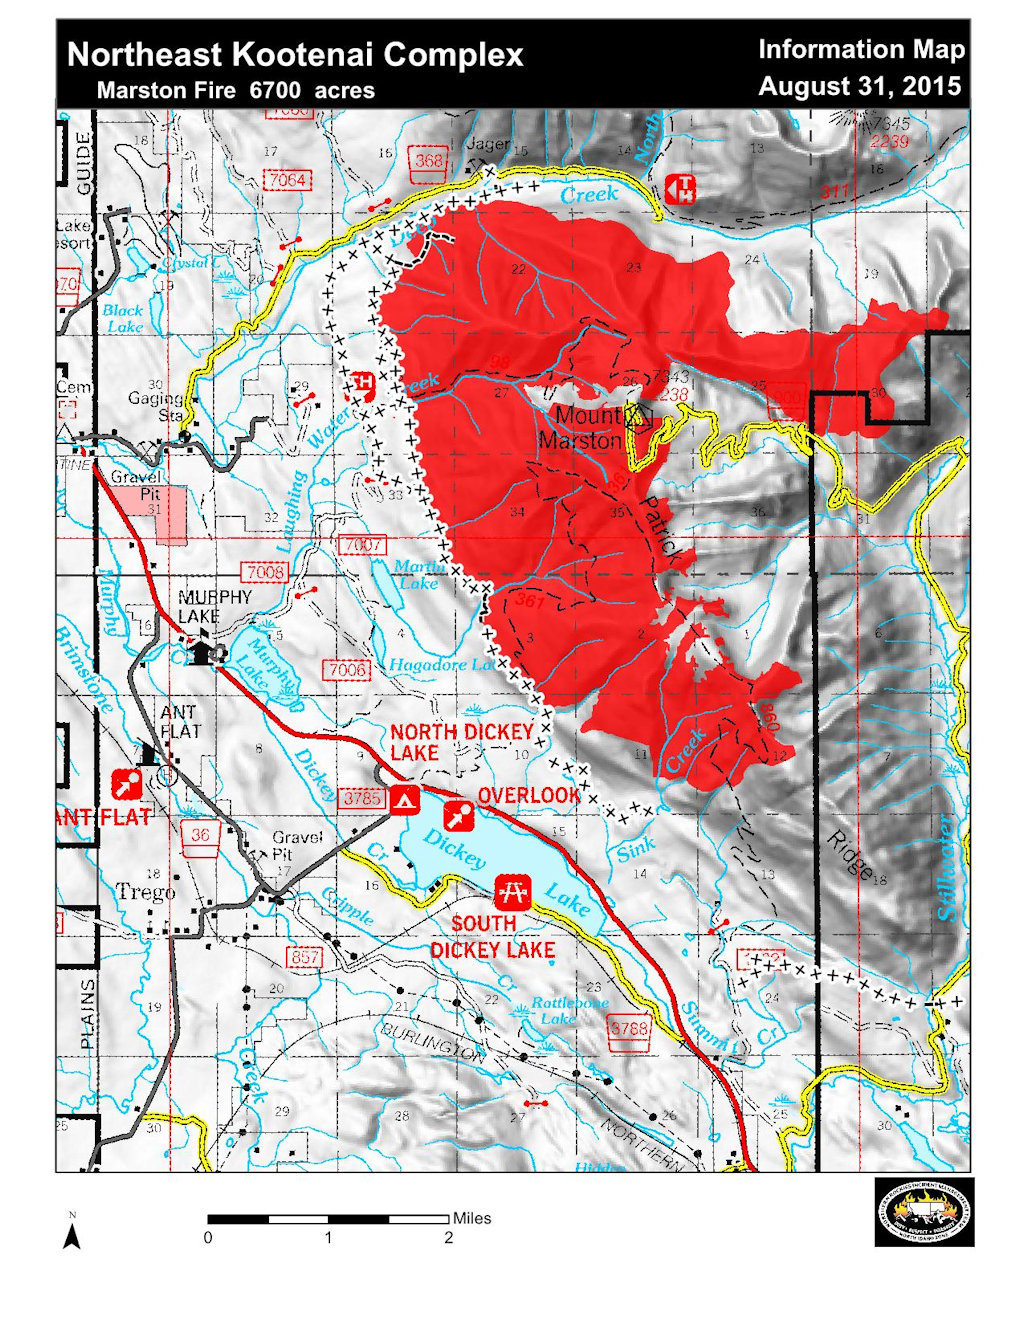 Marston Fire Information Map, Aug 31, 2015